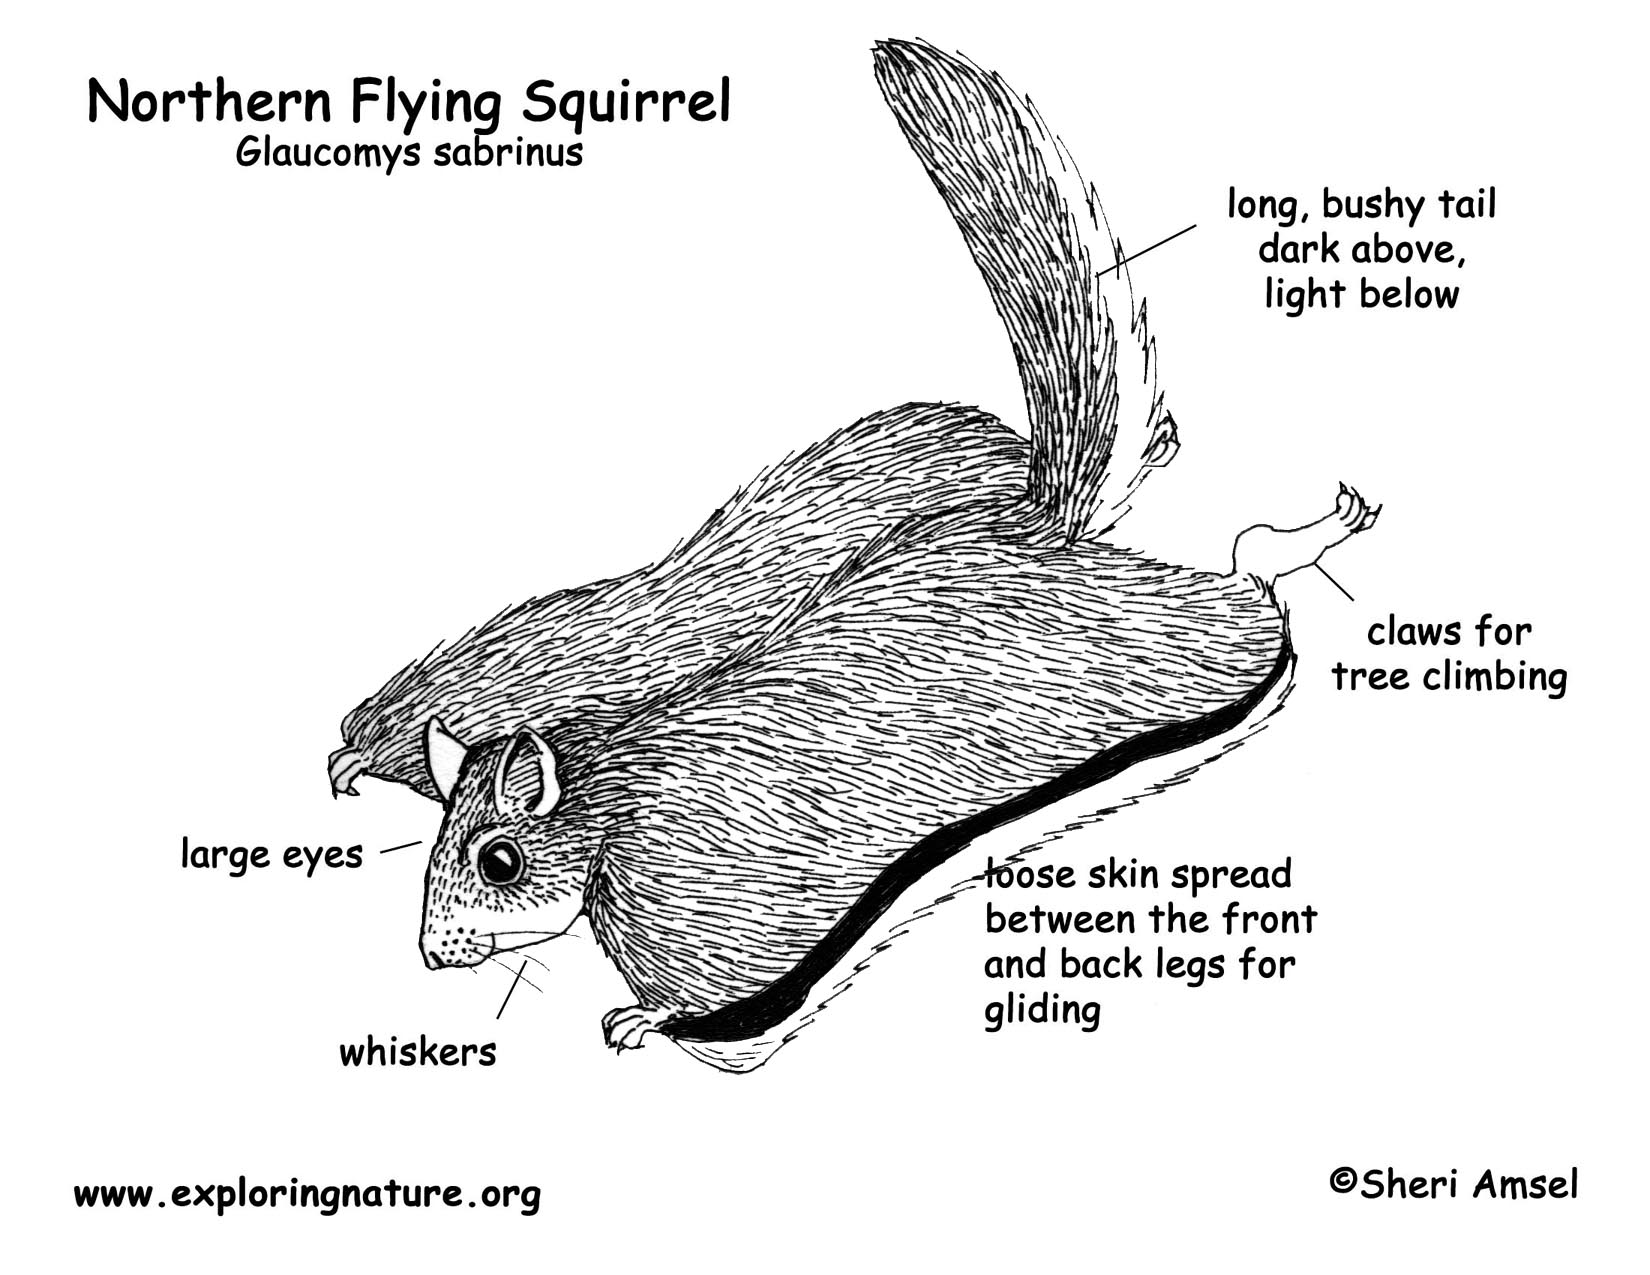 Squirrel Northern Flying